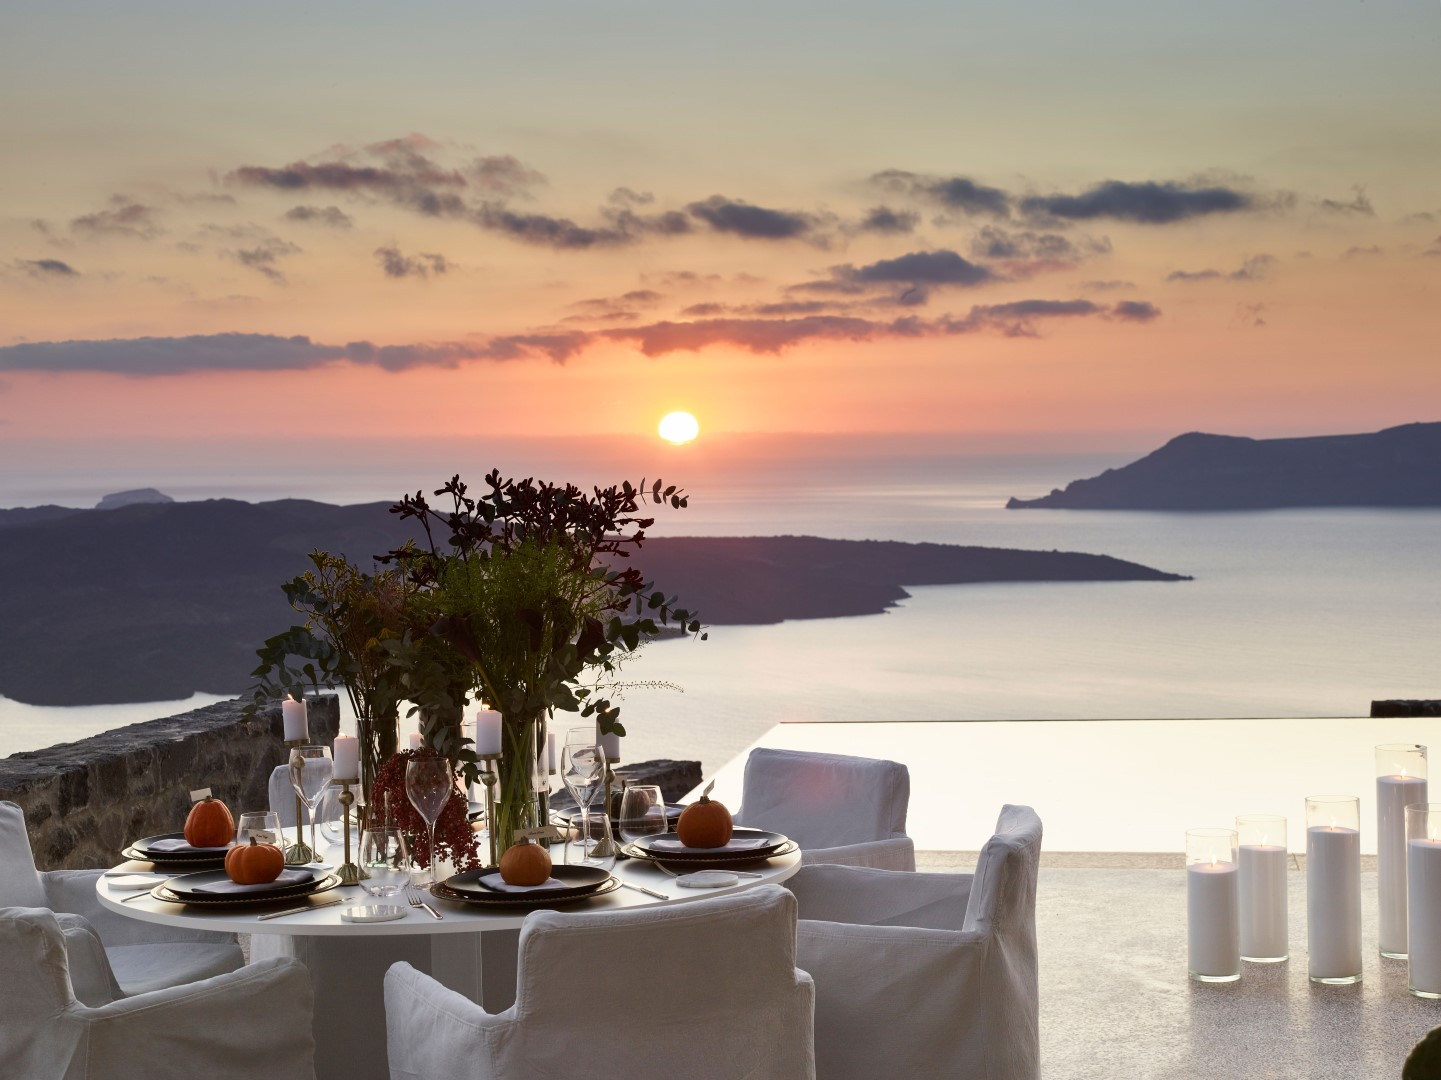 A Luxury Hotel in Santorini that hosts spectacular weddings against the backdrop of Caldera